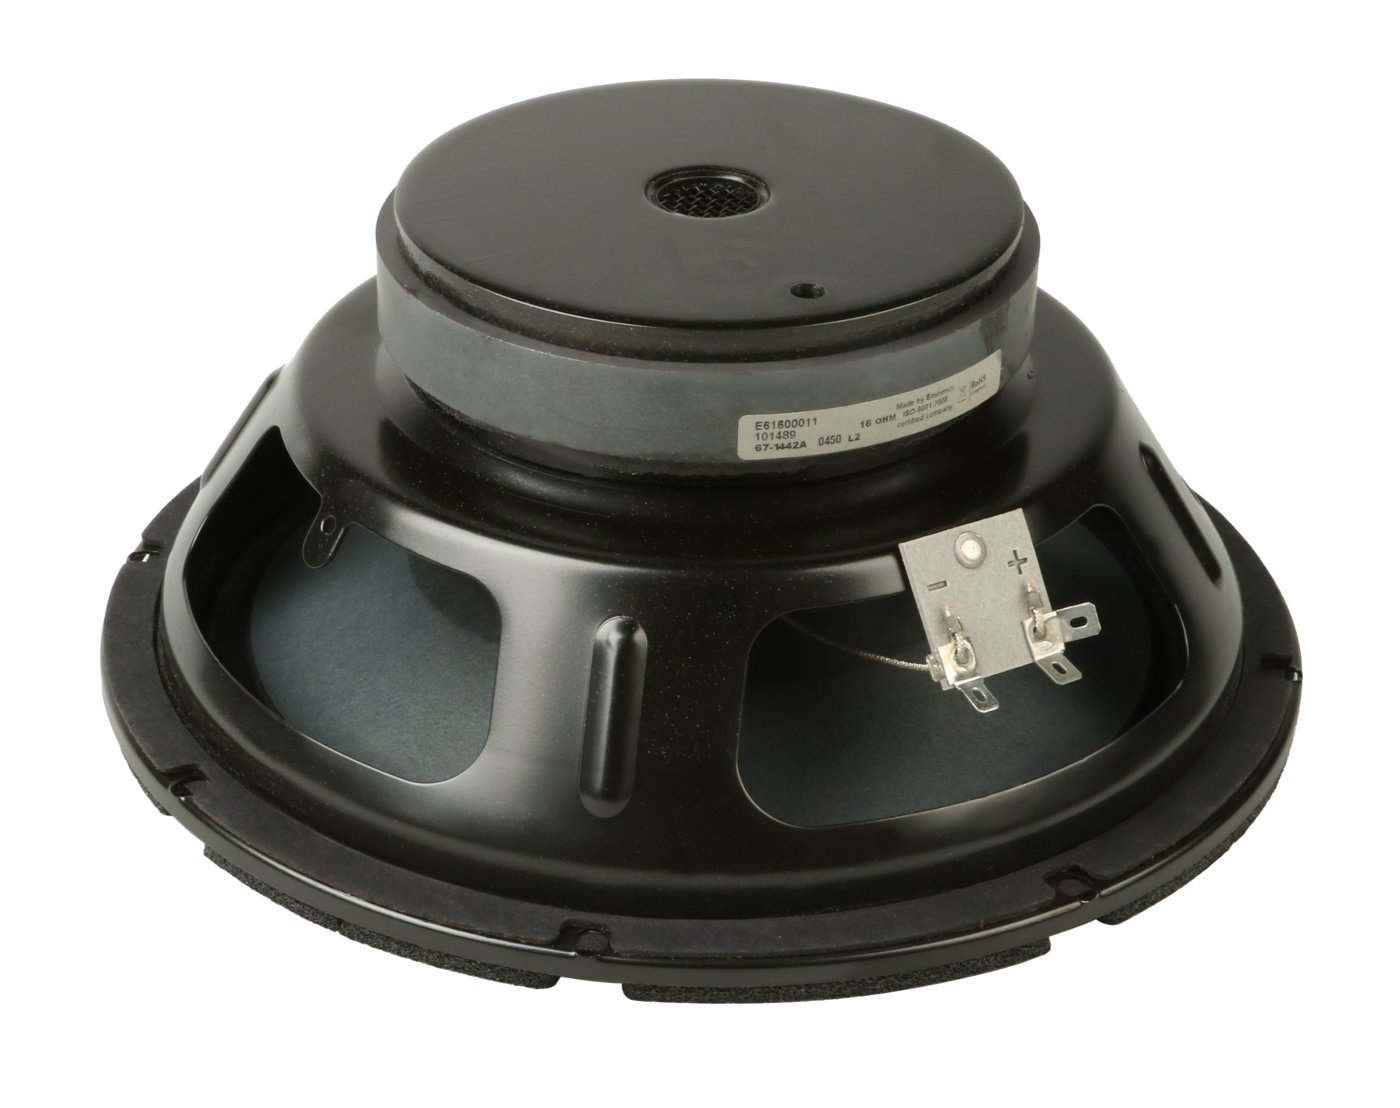 "TC Electronic 7E61600011  10"" Woofer for RS210 7E61600011"